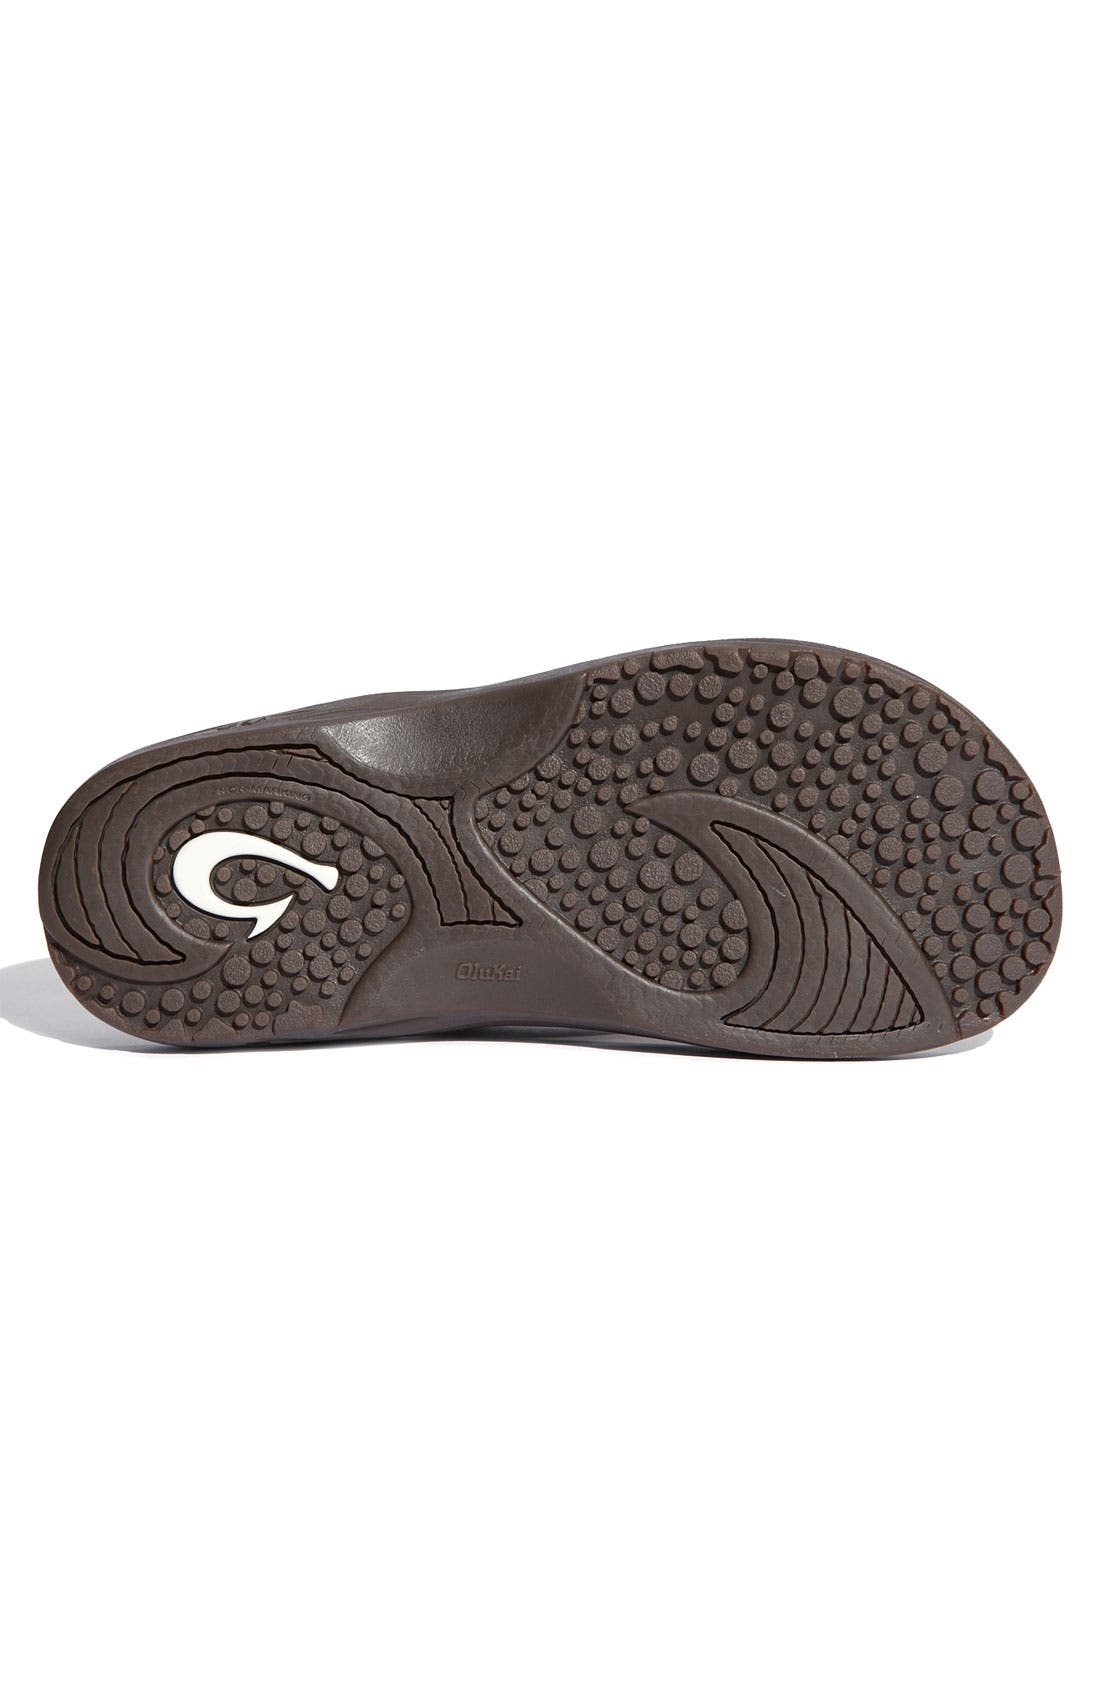 Hokua Flip Flop,                             Alternate thumbnail 4, color,                             Dark Java Faux Leather